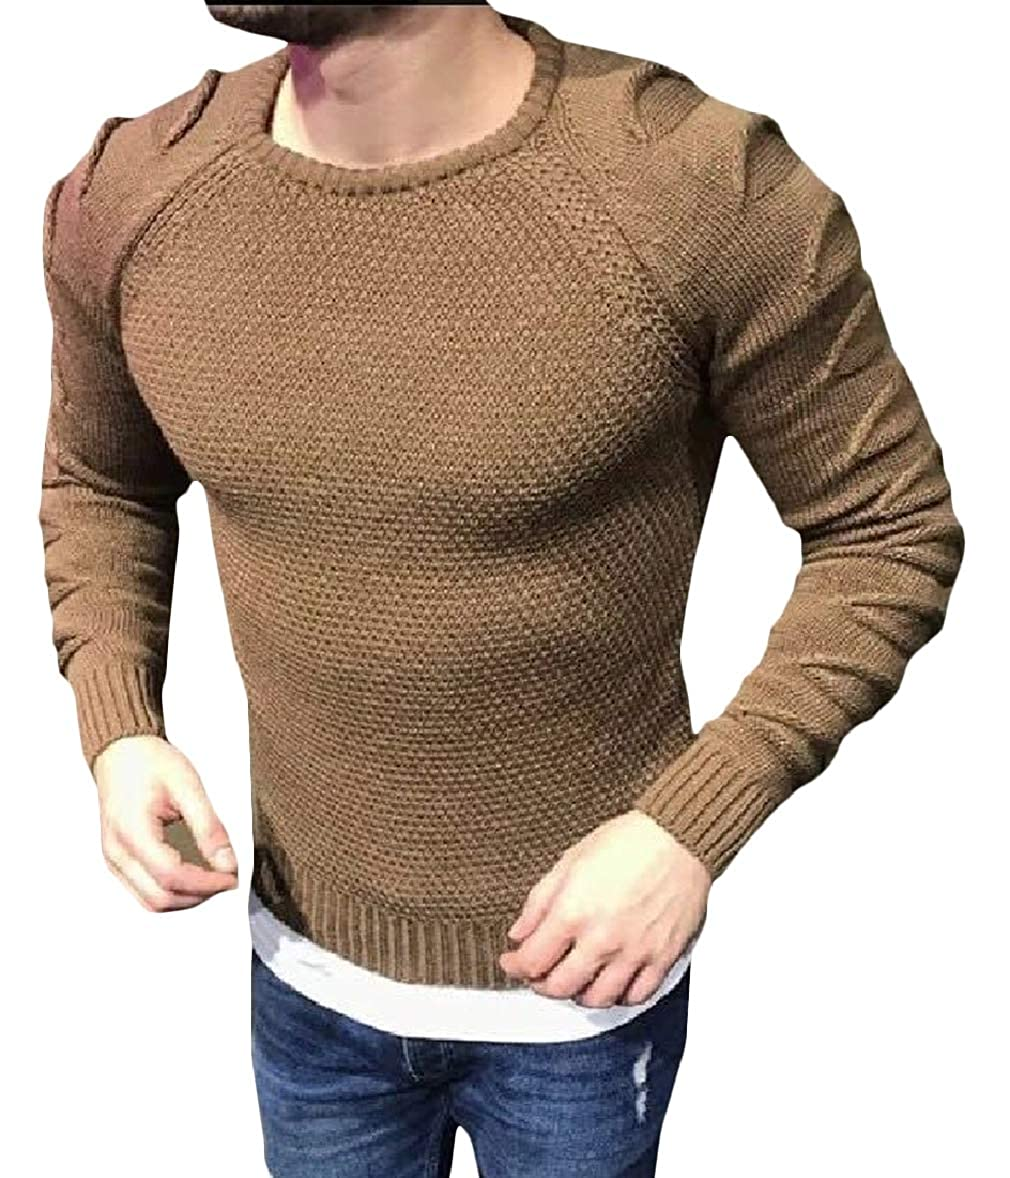 Zimaes-Men Casual Ripped Hole Knitted Long Sleeve Solid Sweater Pullover